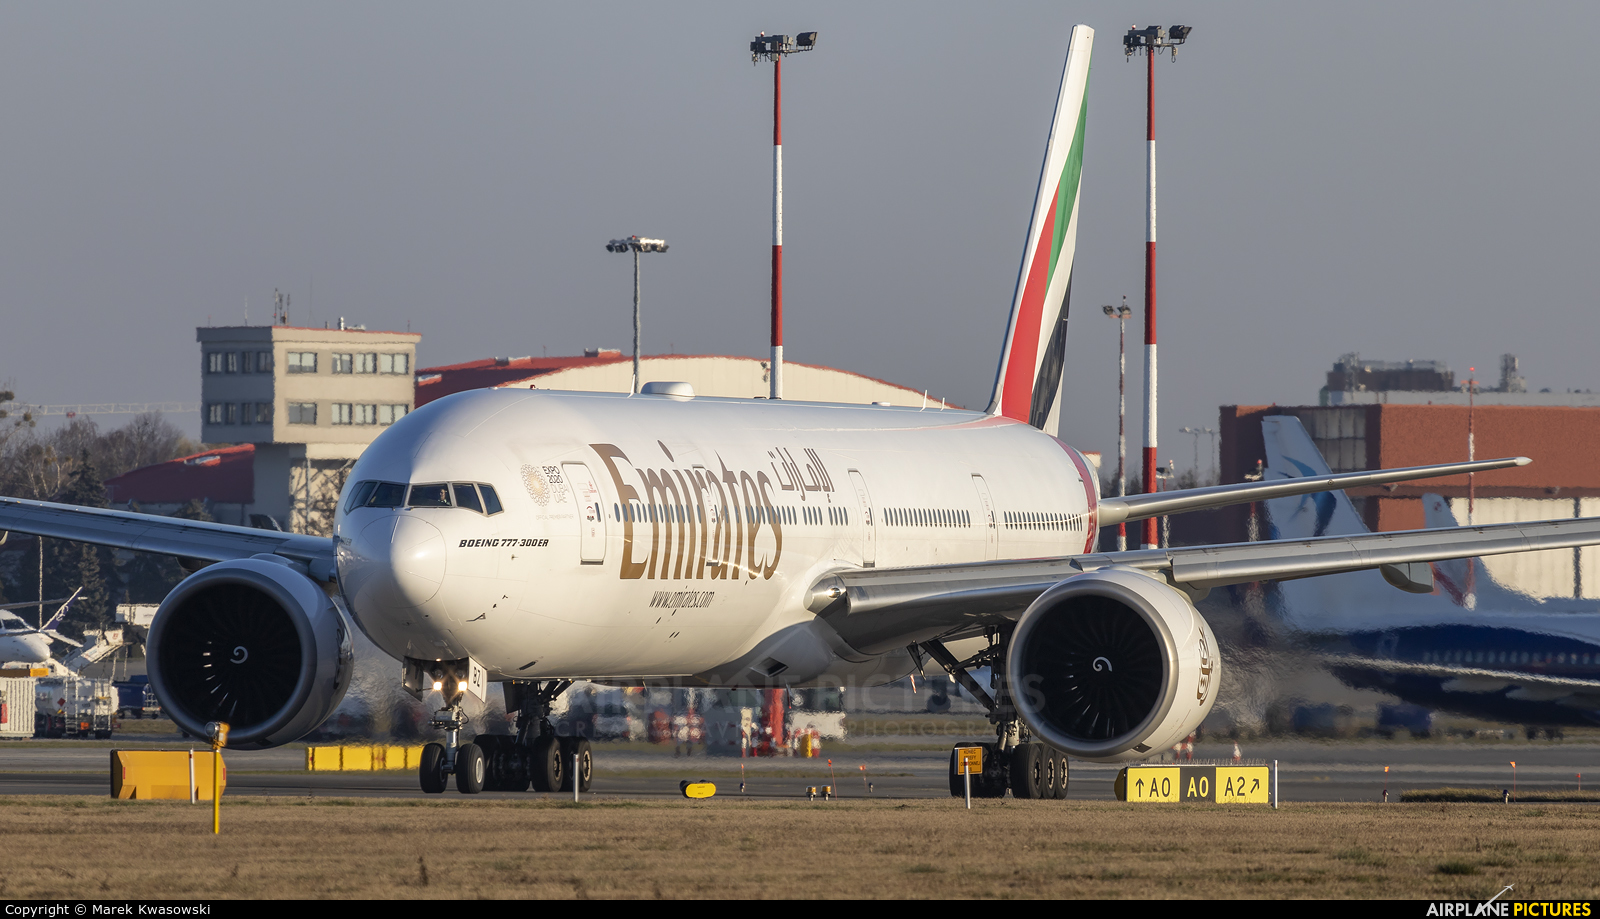 Emirates Airlines A6-EBZ aircraft at Warsaw - Frederic Chopin